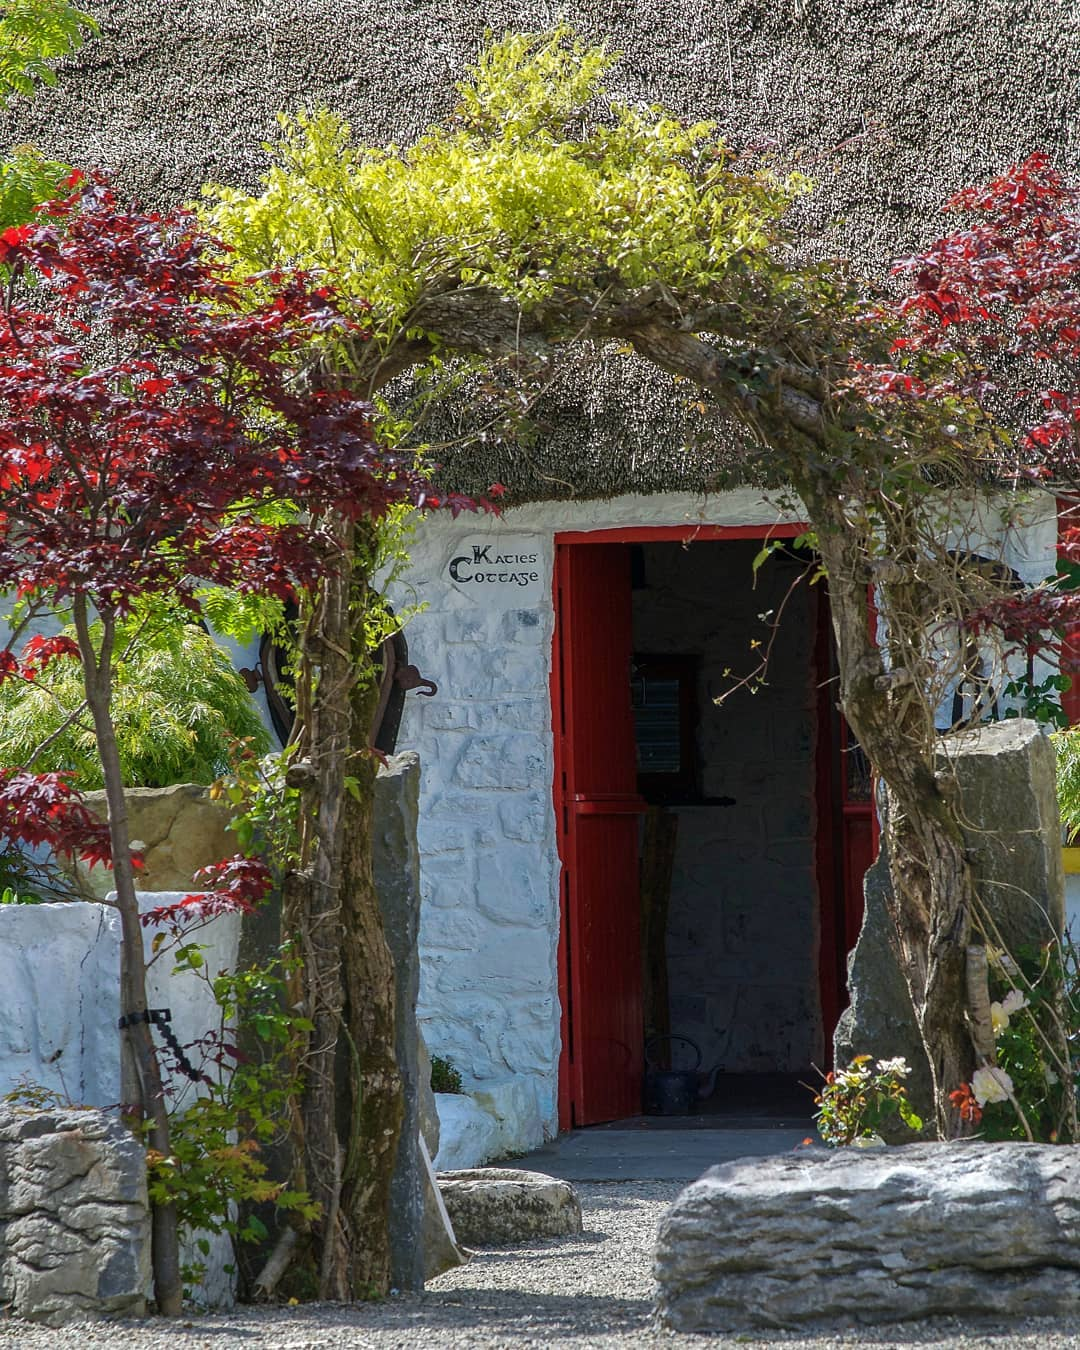 Claddagh Arts Centre and Katie's Cottage Cultural Exhibition in Galway - Visit Galway